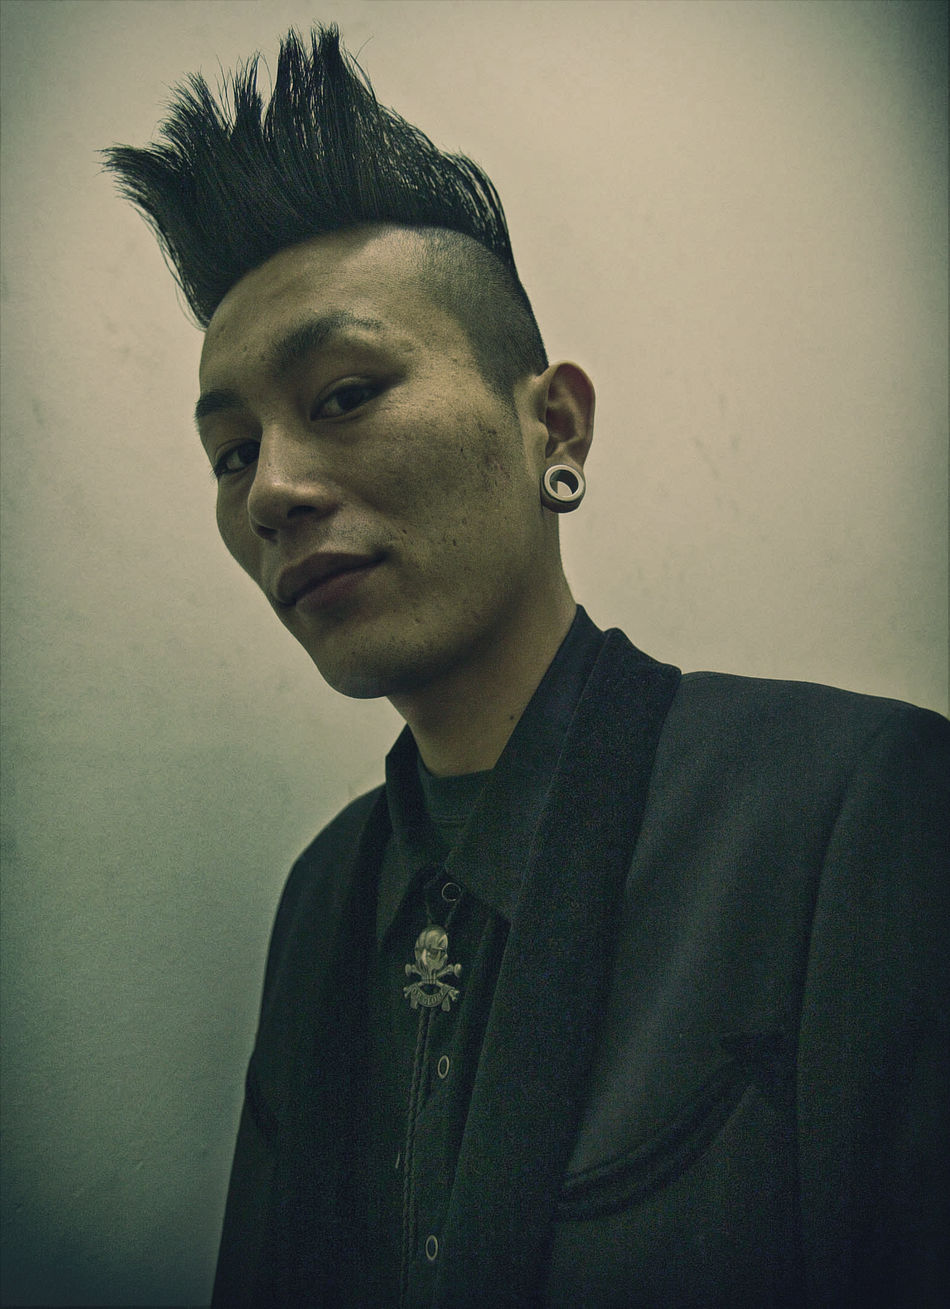 Japanese Rockabilly Confidence  Contemplation Fashion Front View Head And Shoulders Headshot Human Face Lifestyles Looking At Camera Mid Adult Person Photography Taking Photos Reportage Documentary Photography Portrait Portrait Portraits Japanes Man Male Rockabilly Dramatic Look New Style Teddy Boy Urban Street Photography Taking Photos Fotos My Point Of View Postprocessing Real People Serious Smiling Vignette Young Adult Young Men